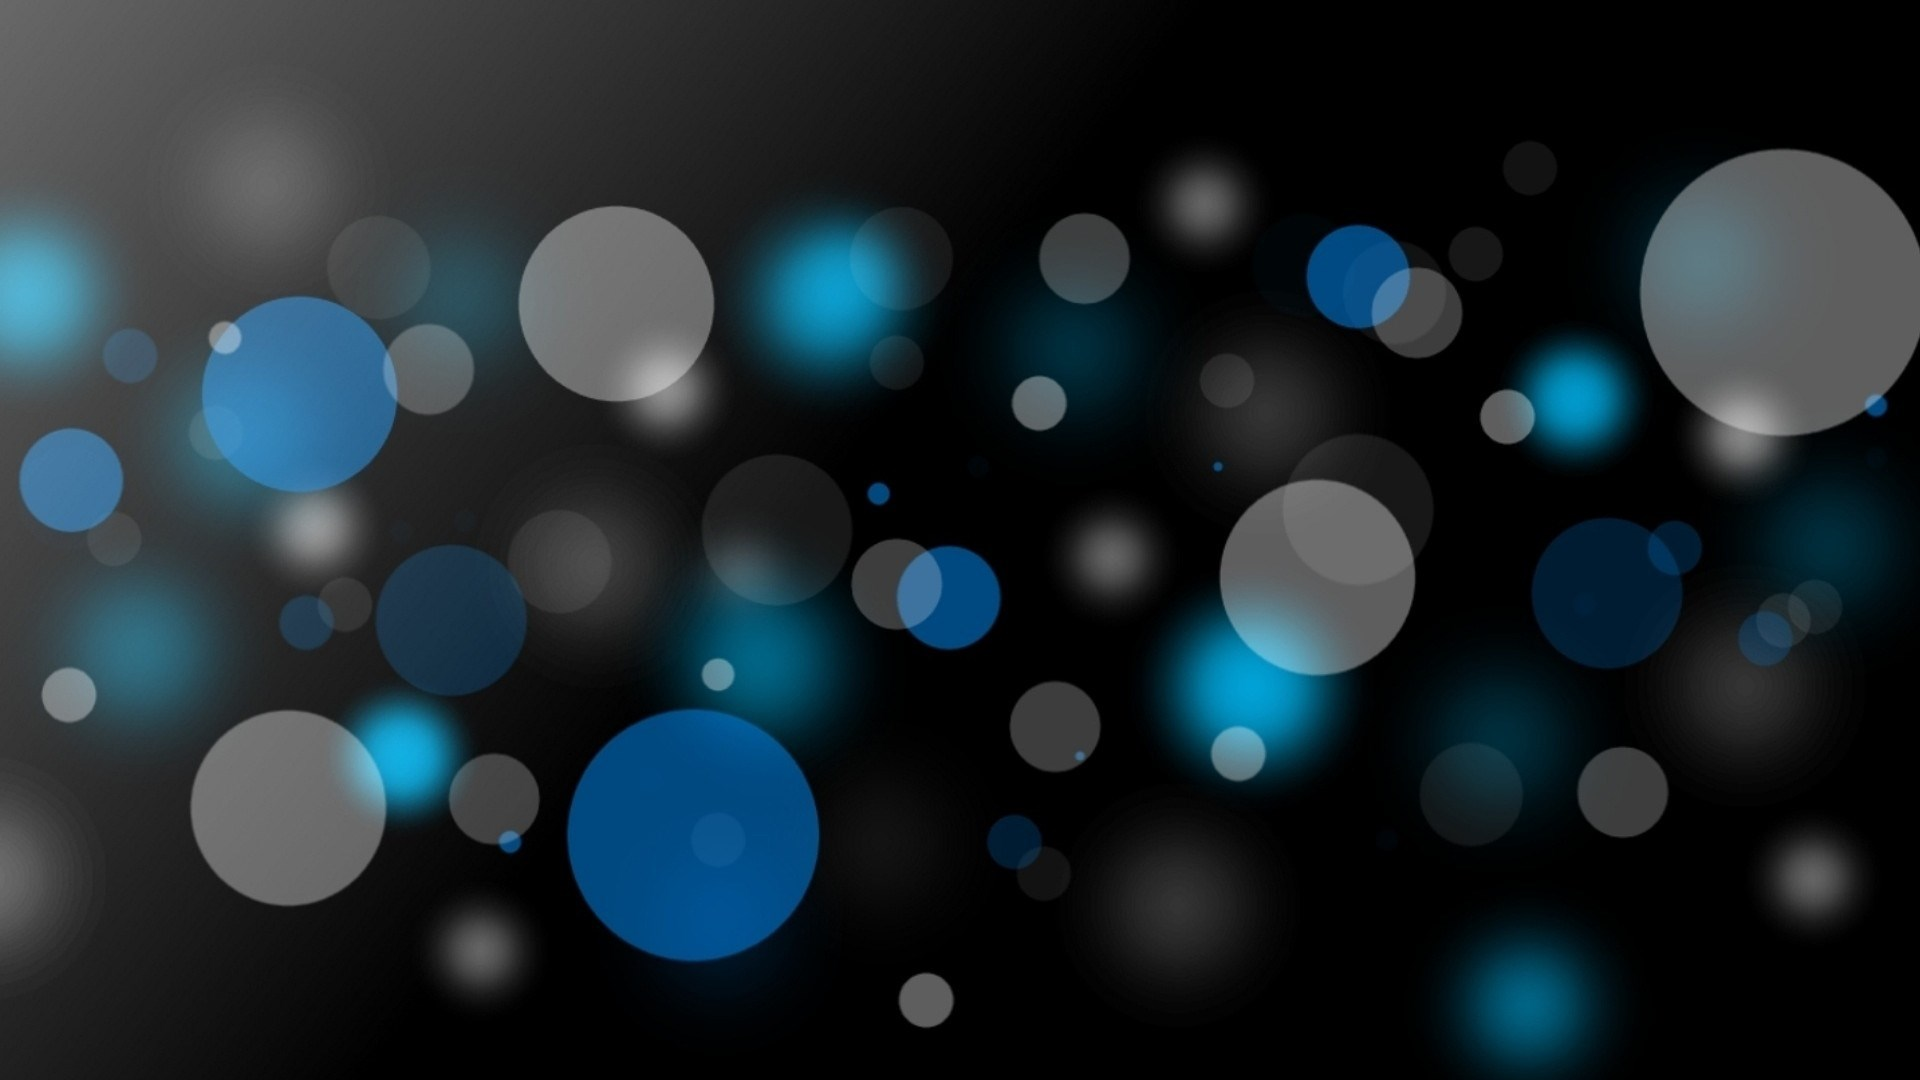 dark-blue-pattern-desktop-background-1920x1080-wallpaper-wp3404437